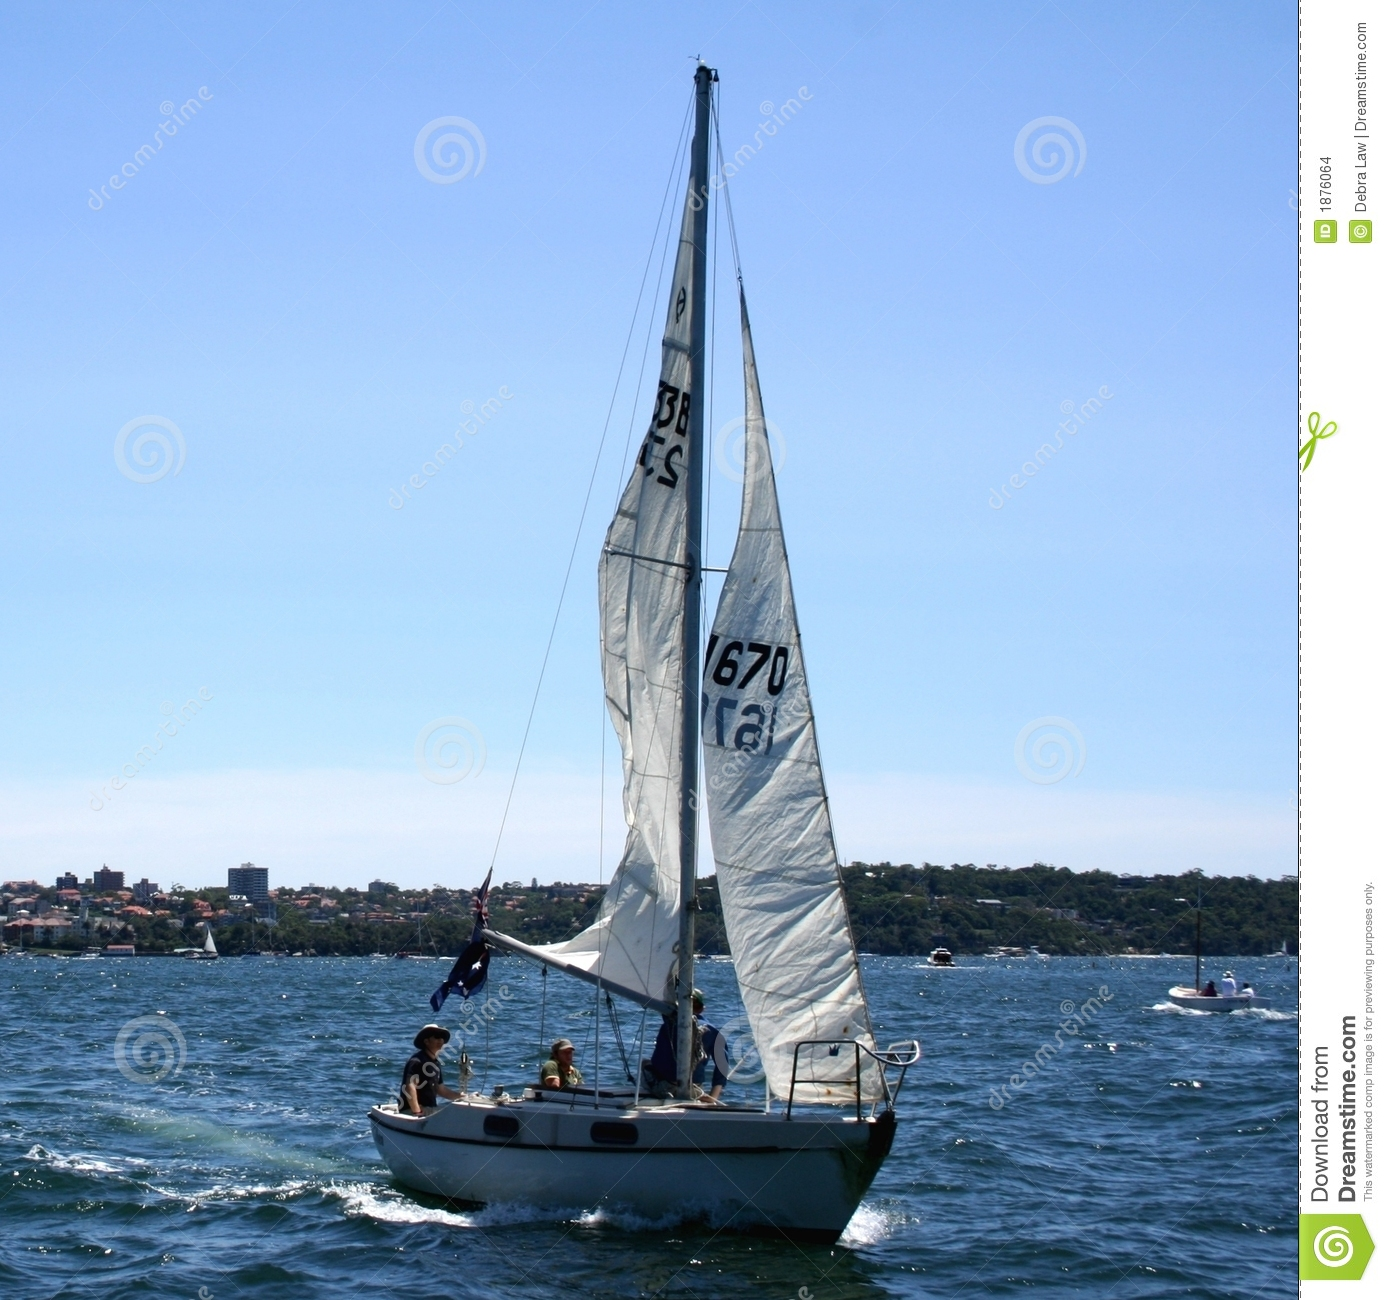 People Sailing Yacht In Sea Stock Images